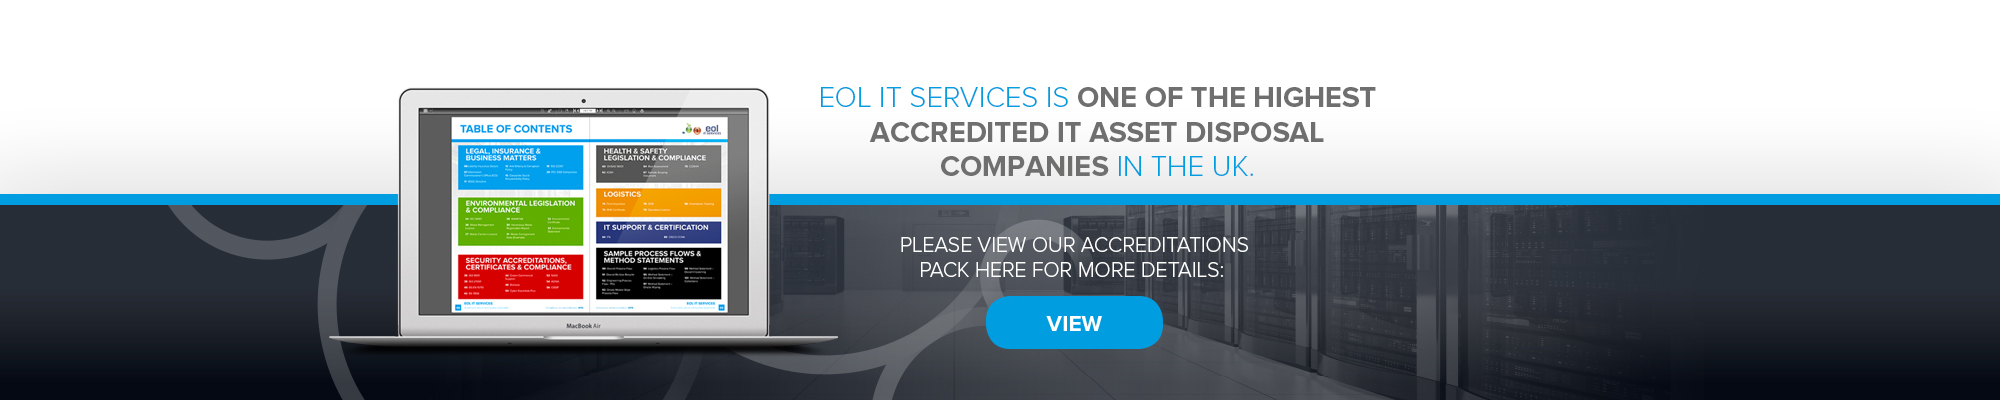 EOL Is The UK's highest accredited ITAD | Our Accreditations